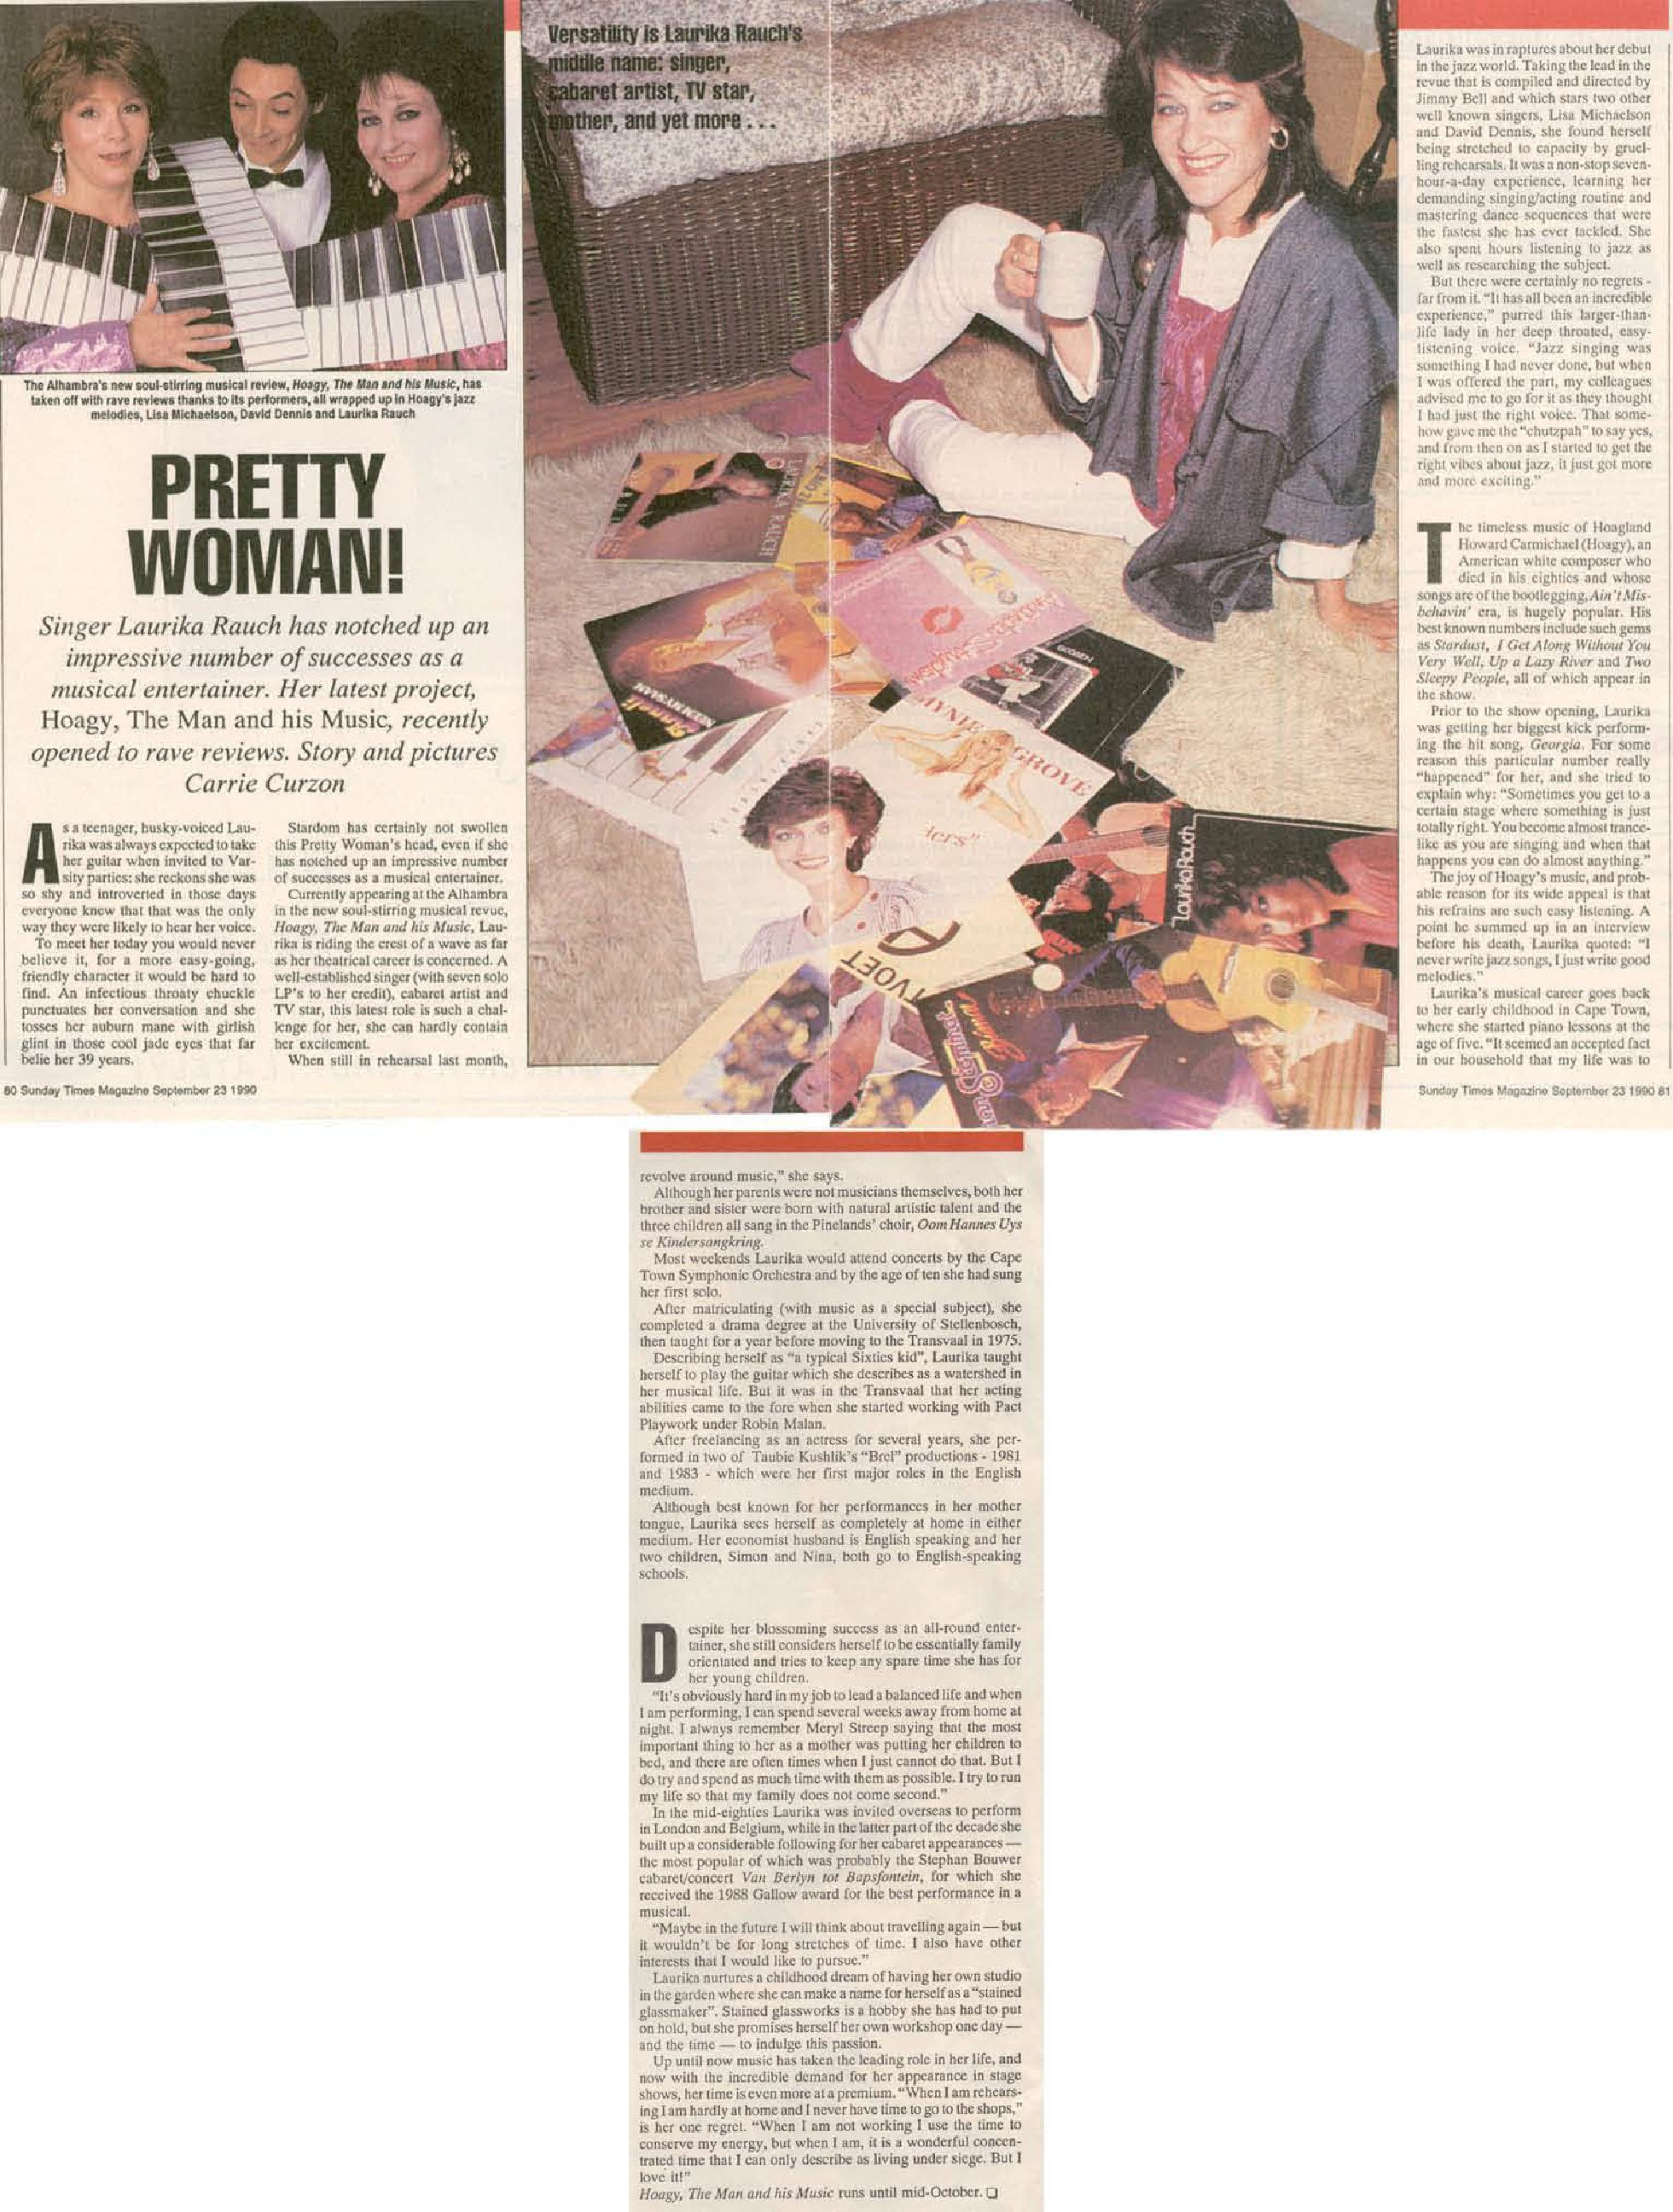 1990-sunday-times-pretty-woman-updated